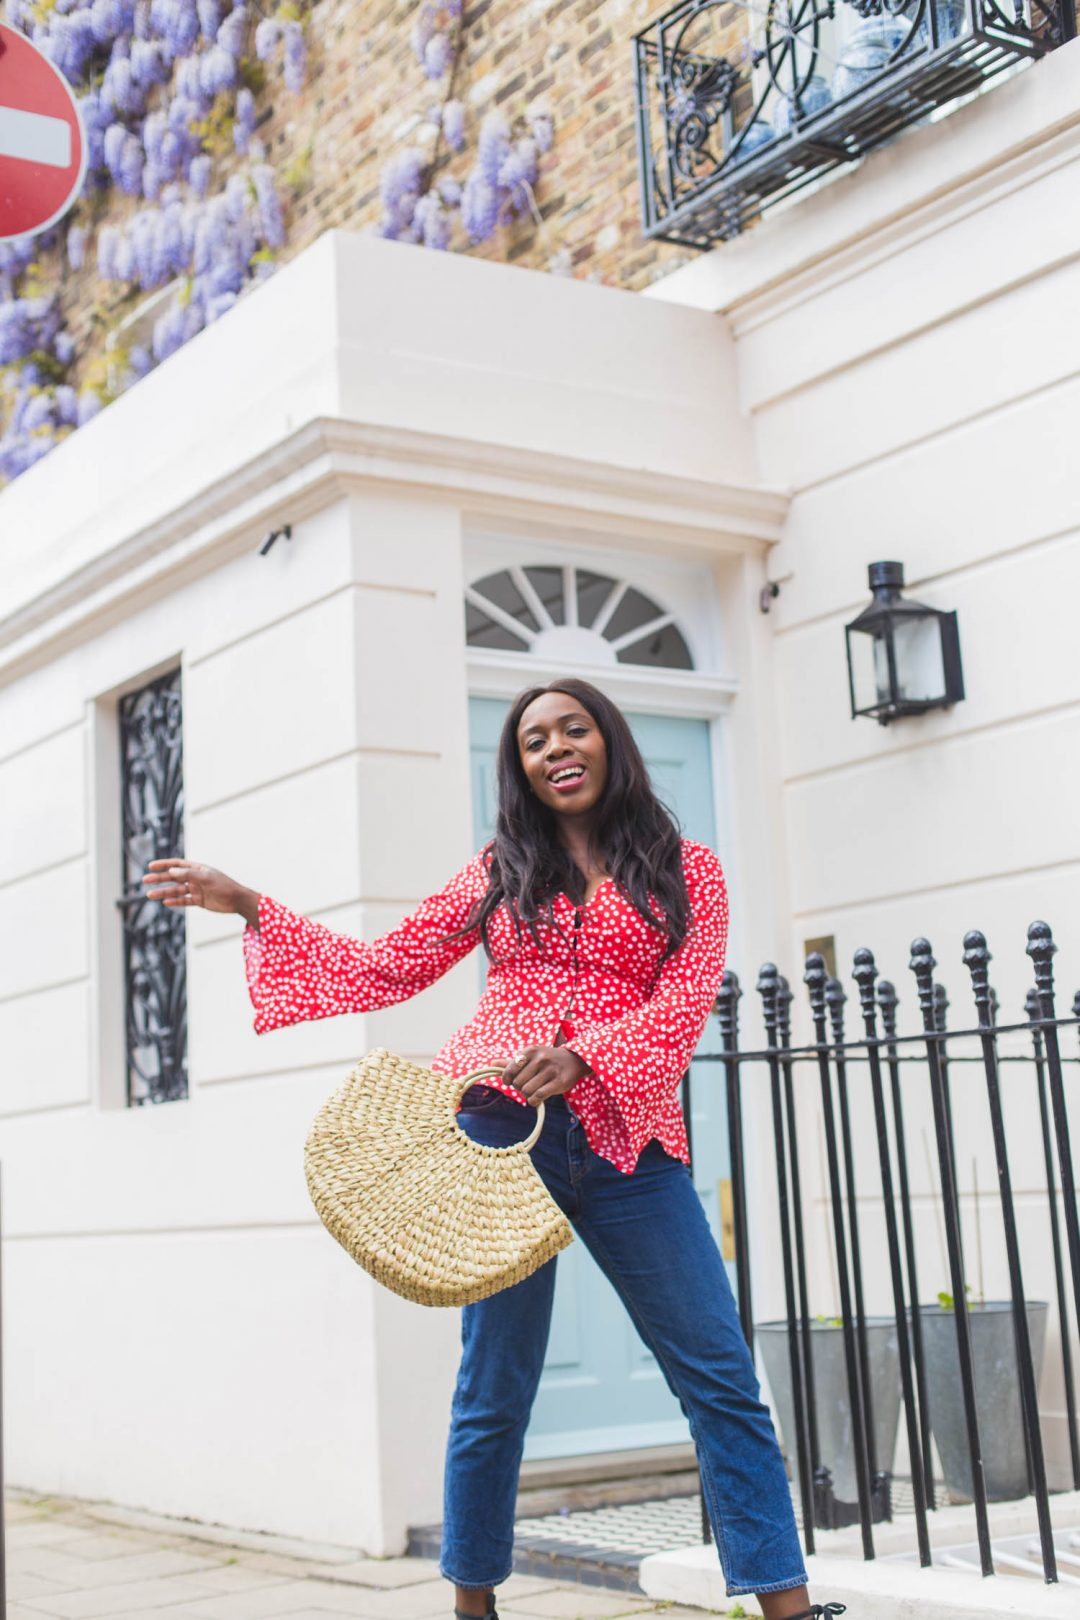 If you need help with how to update your Spring wardrobe, then fashion blogger Kristabel Plummer has you sorted with her latest haul. There's the perfect Miss Selfridge top to wear with jeans, the sell-out leopard & Other Stories pleated skirt and the best transitional Topshop duster coat.